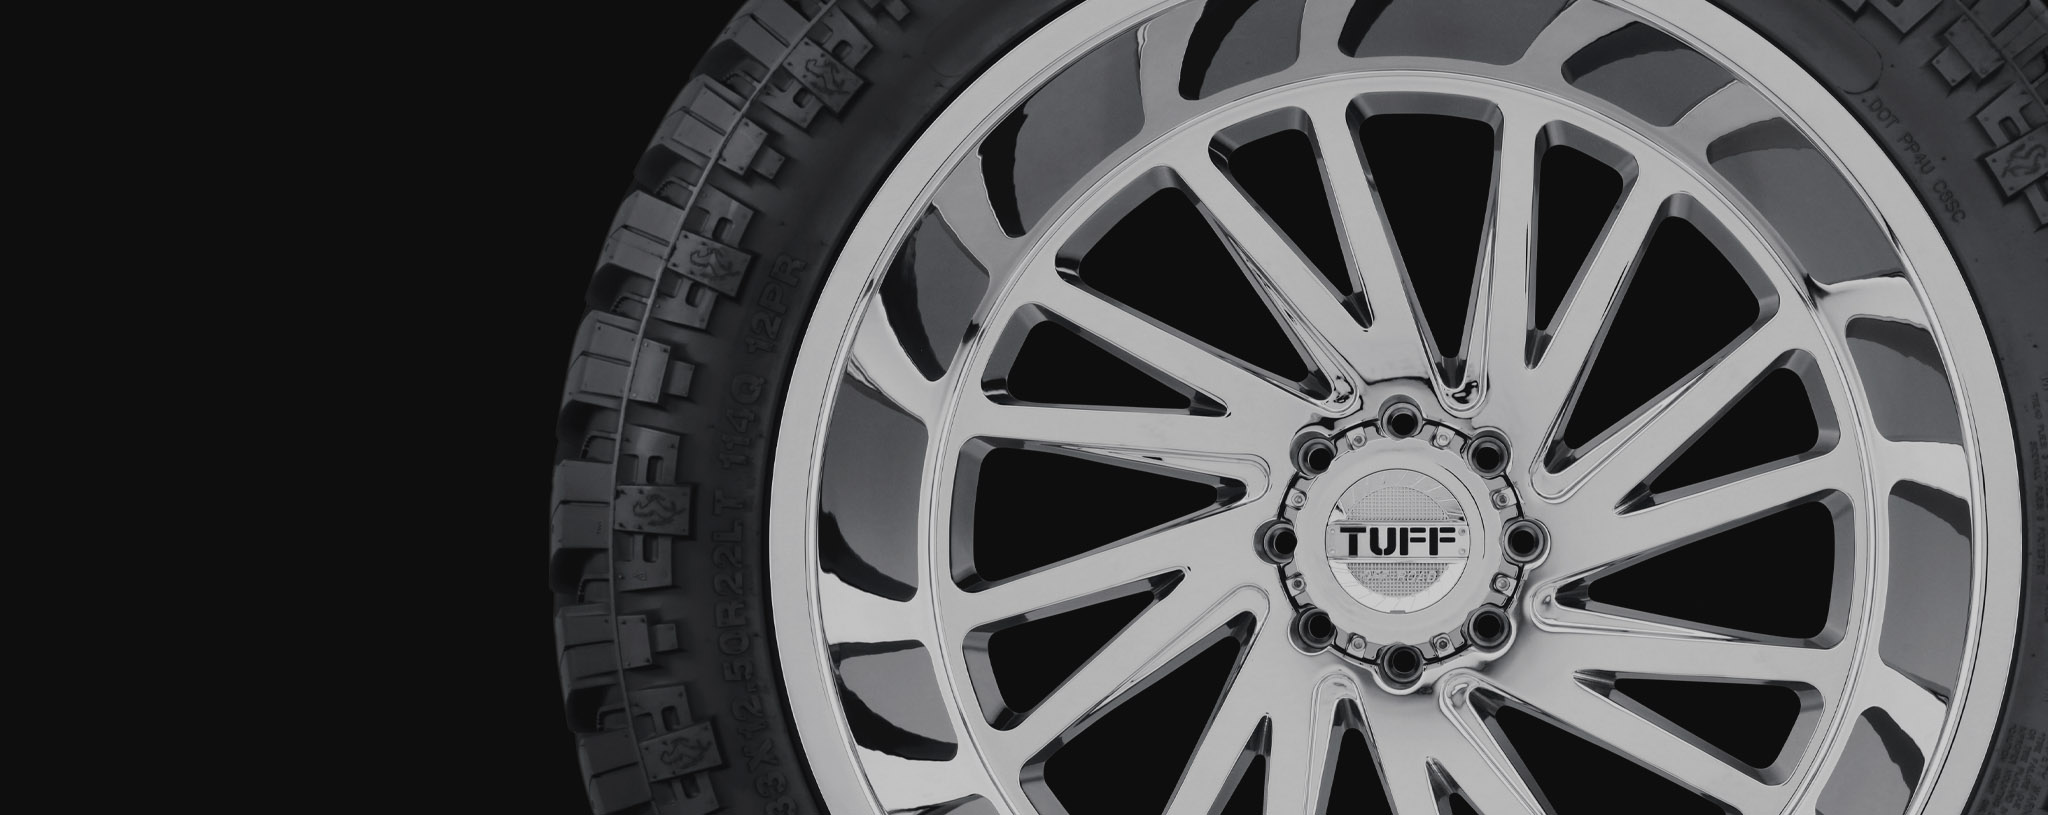 Off Road Wheels | Truck Wheels and Rims by Tuff Wheels